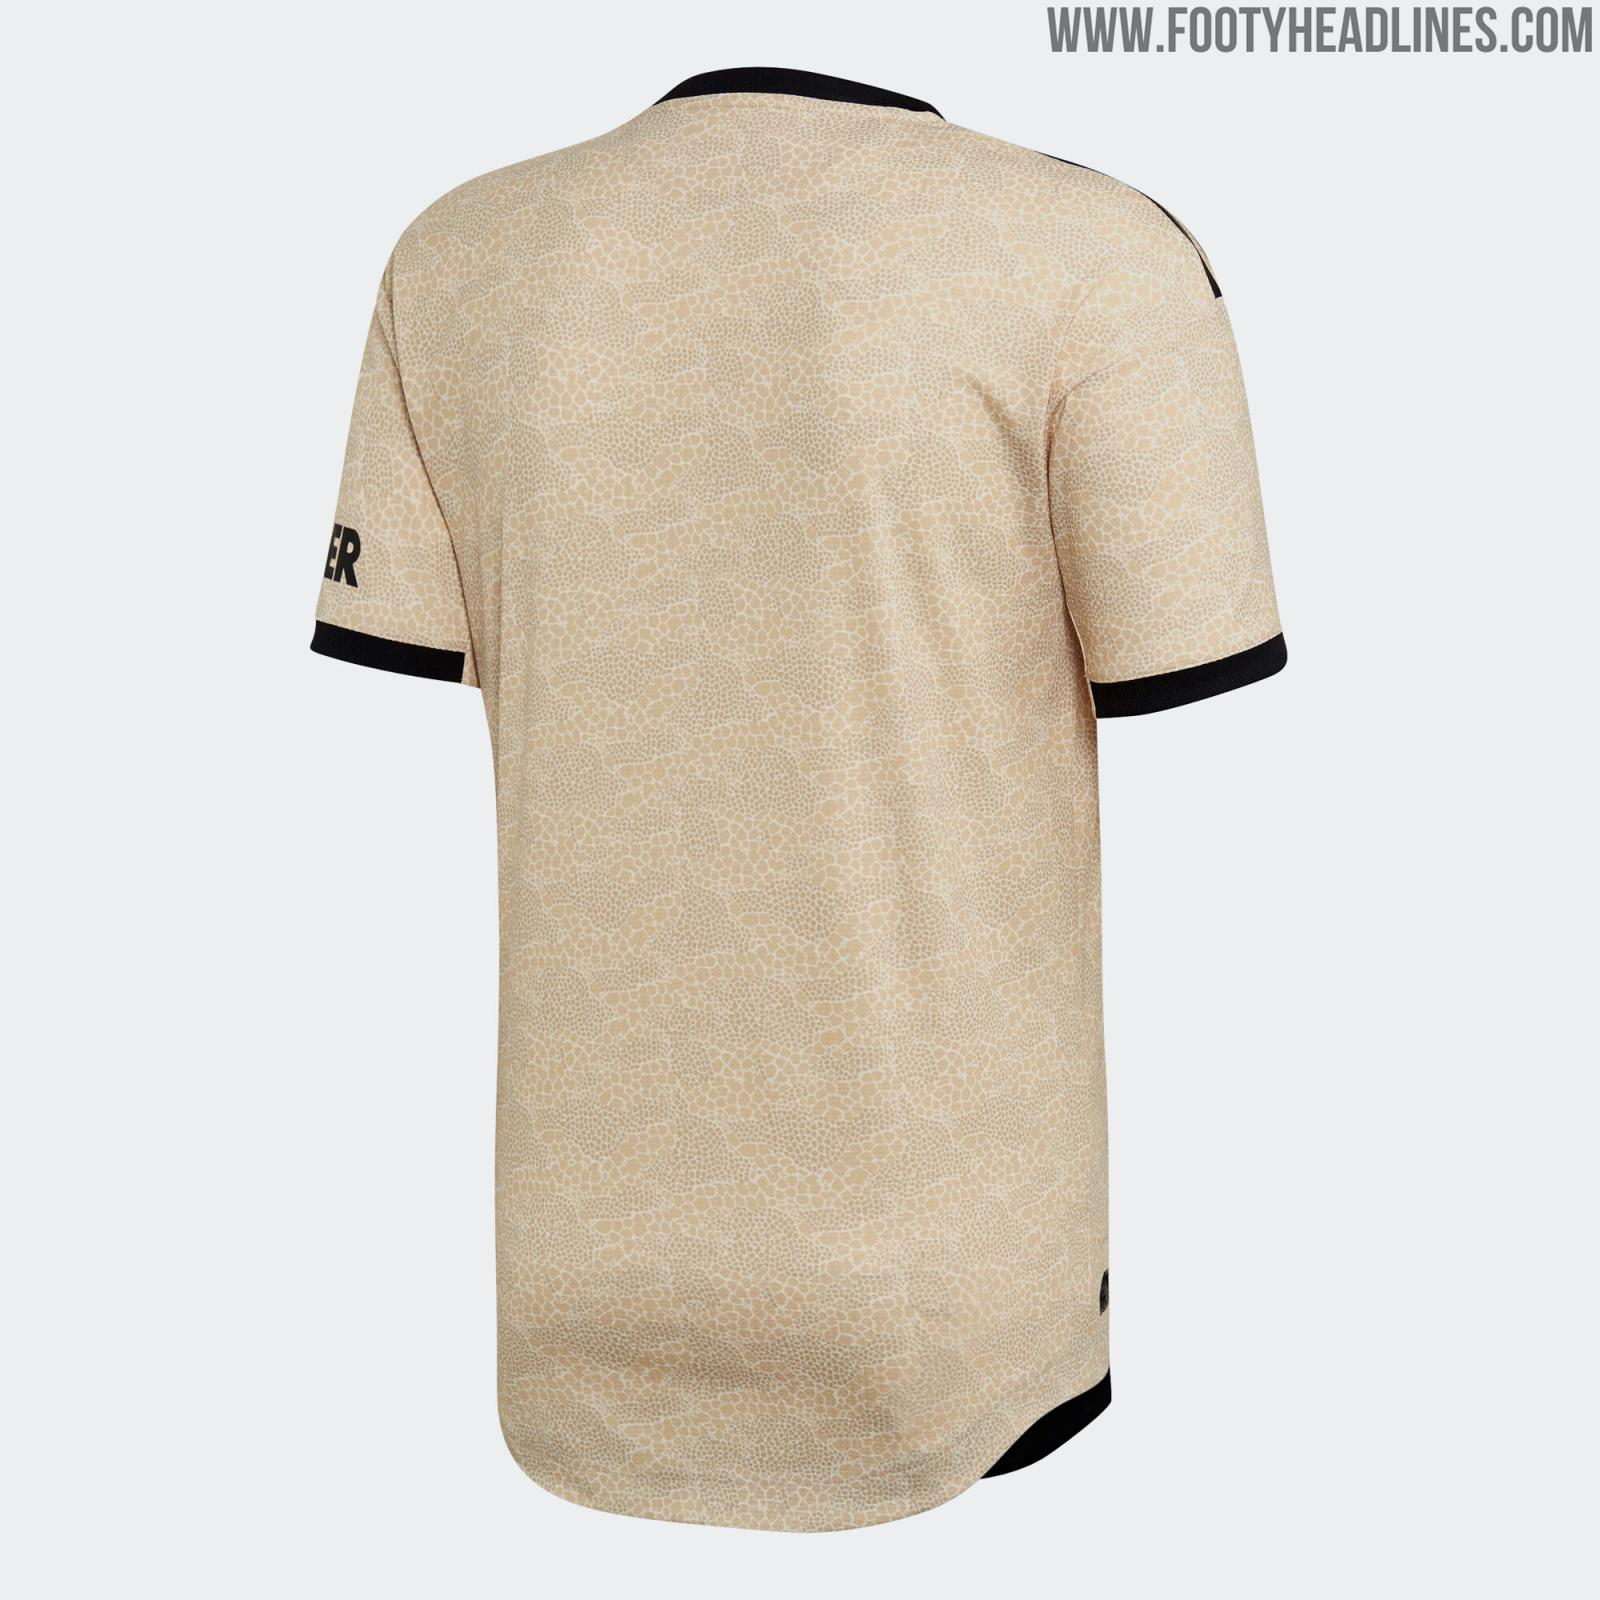 Northern Neck Chevrolet >> Manchester United 19-20 Away Kit Released - Footy Headlines